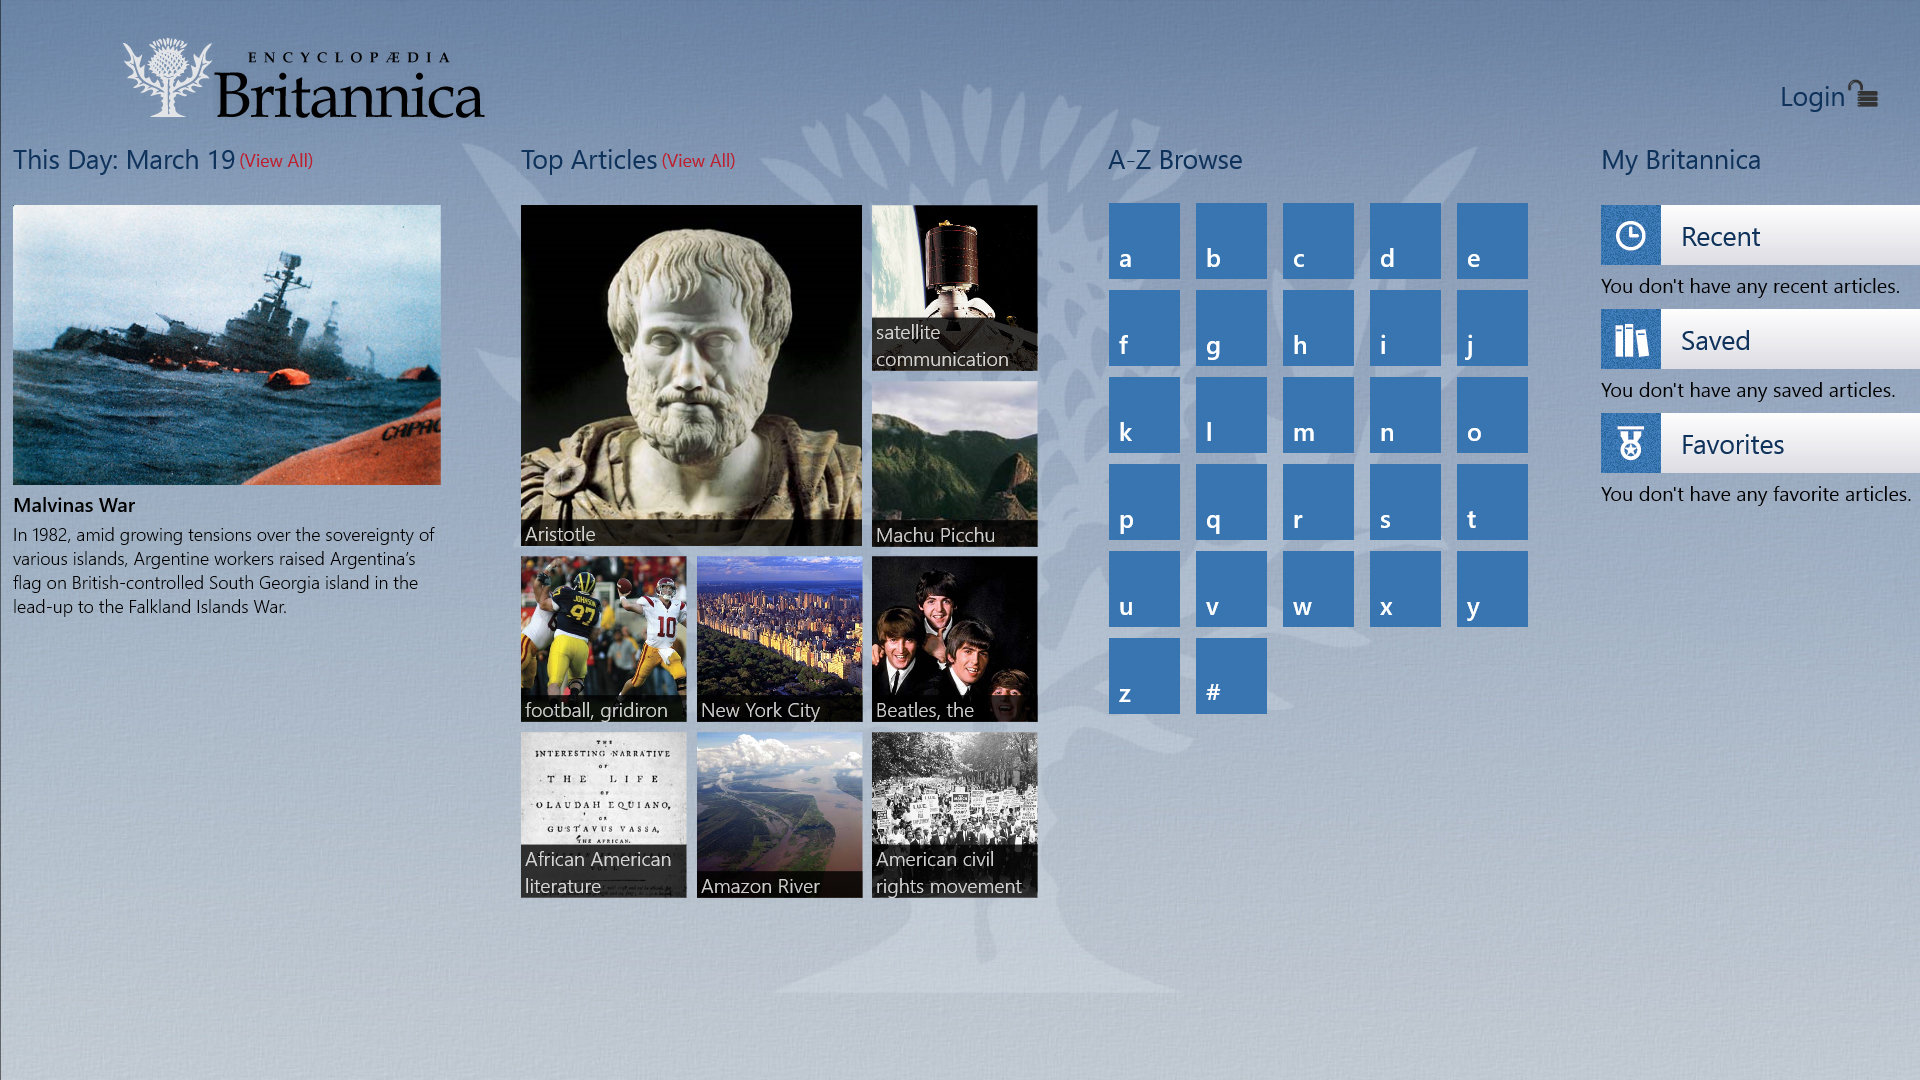 The Lenovo Y510p offers a fancy interface for Encyclopedia Britannica.